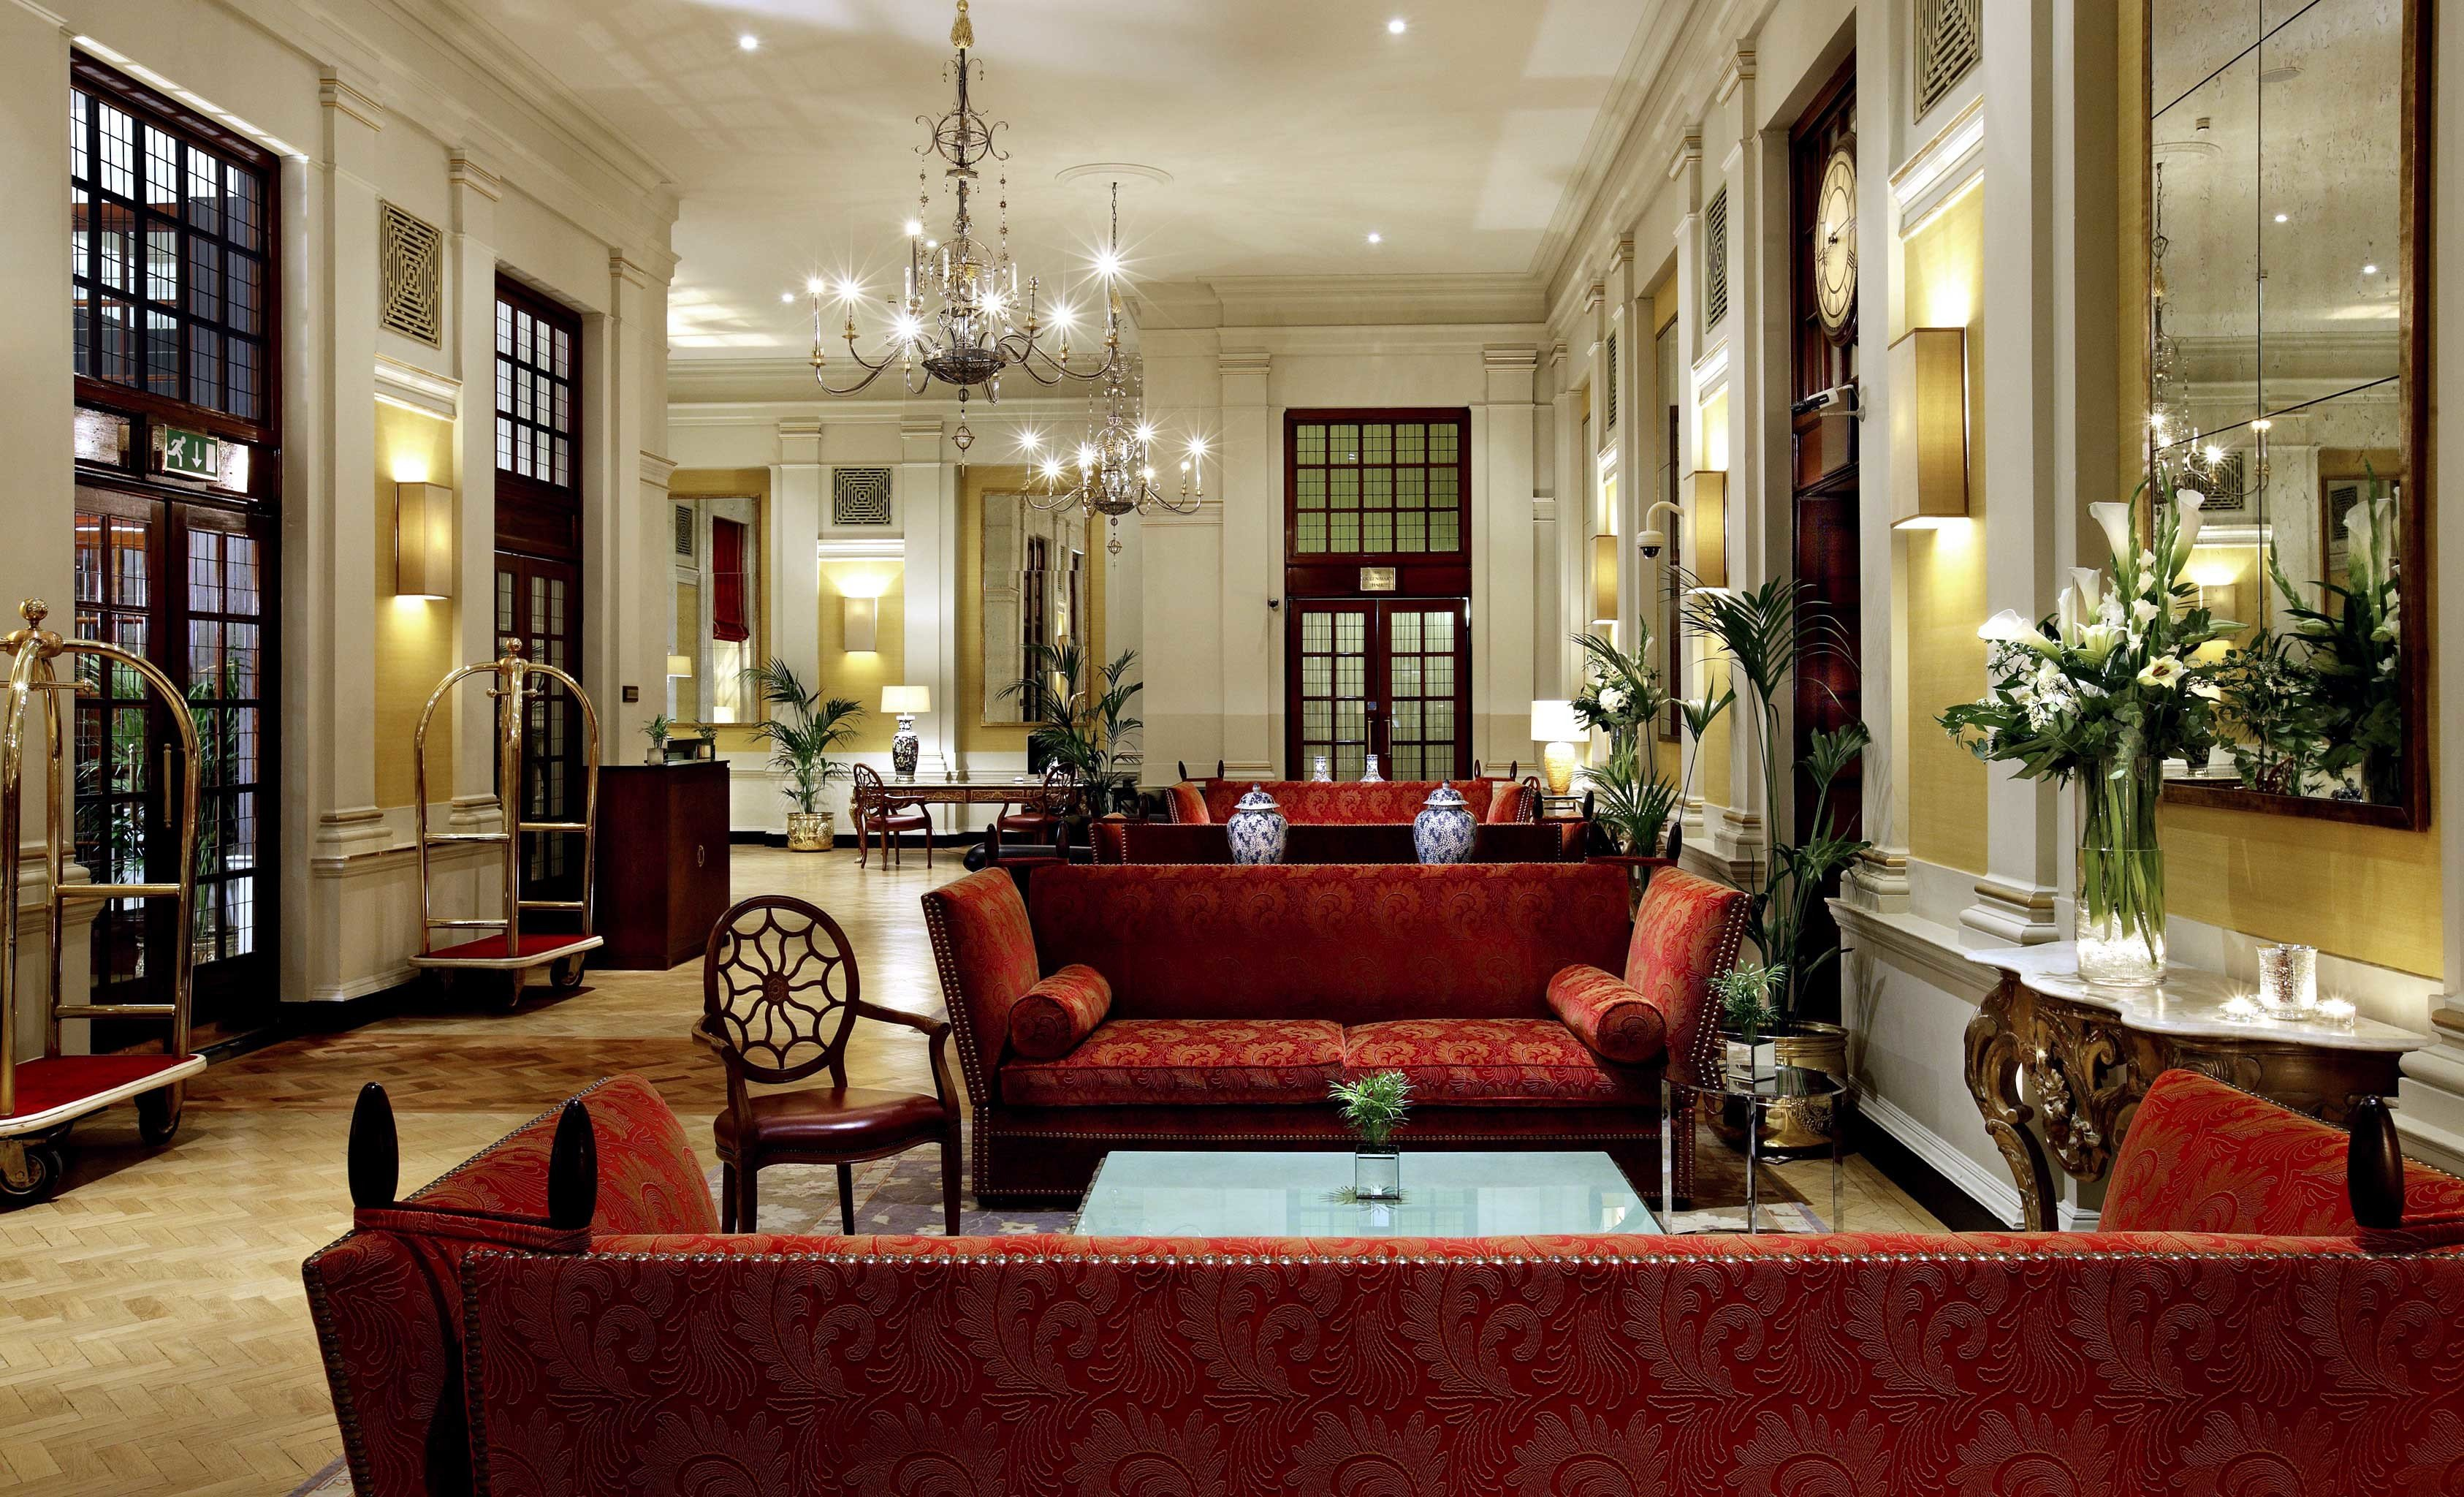 Hip Hotels Lounge Luxury Trip Ideas sofa Lobby living room red home palace mansion leather